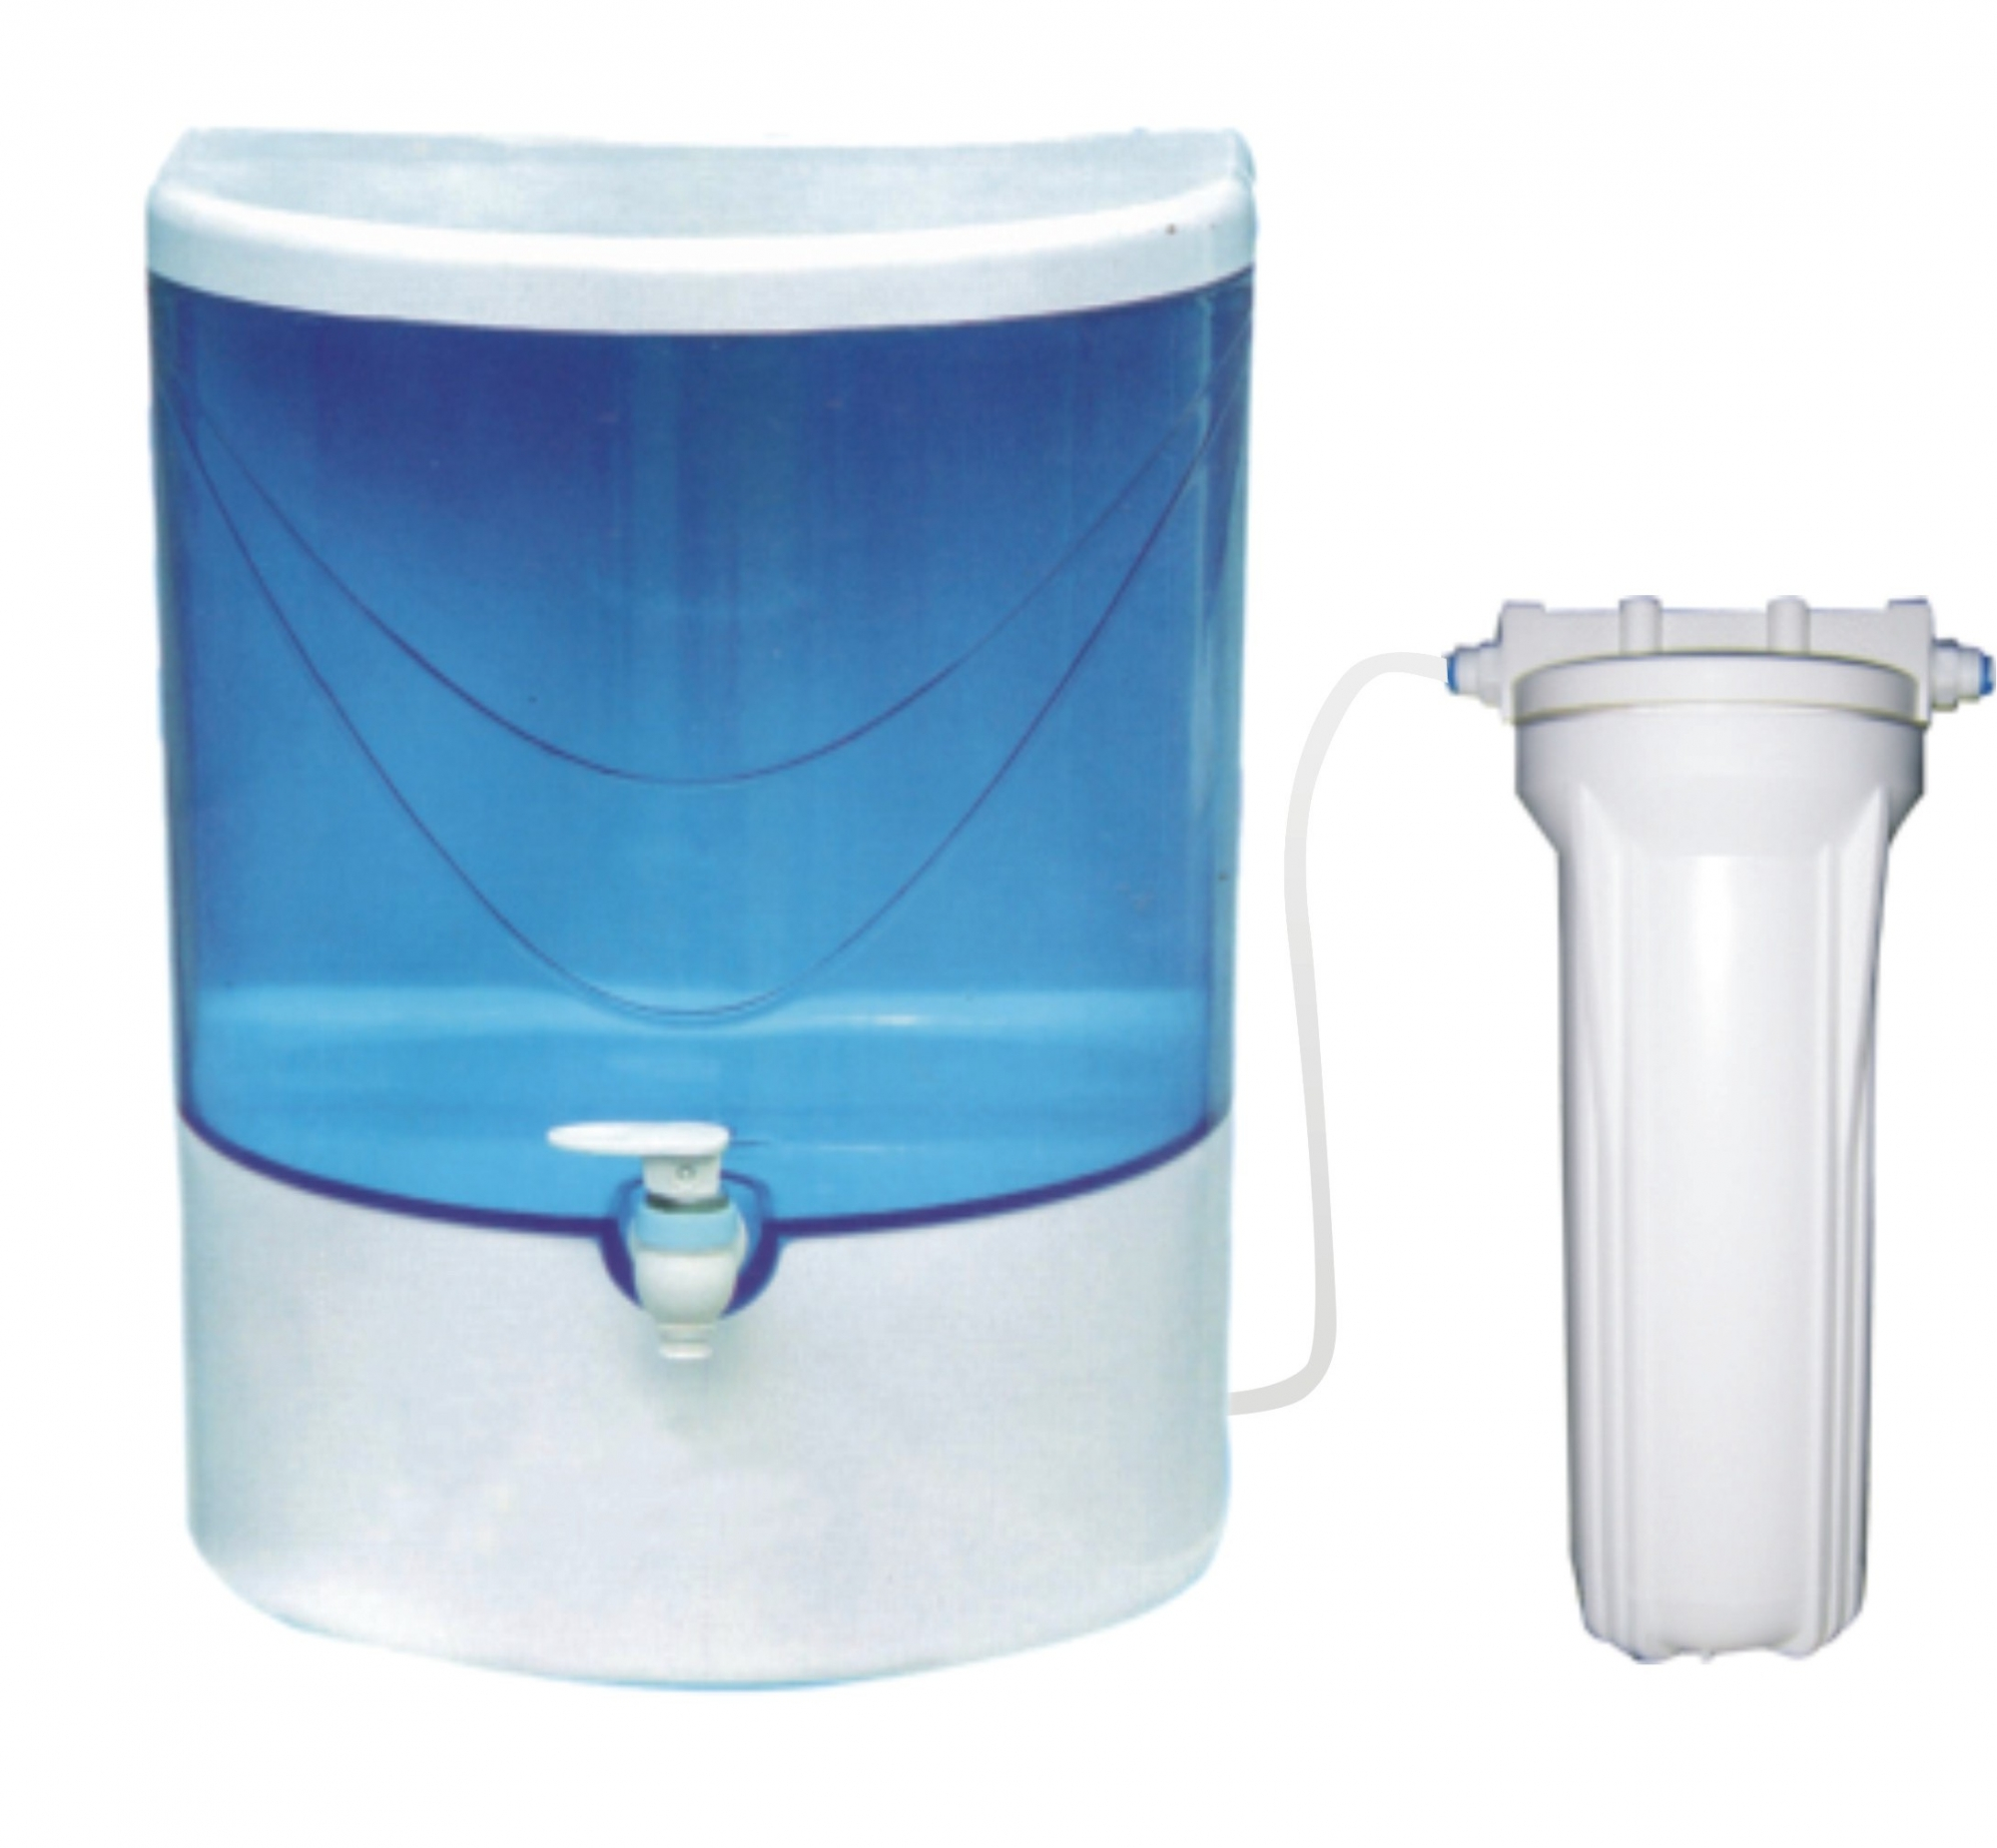 Where To Get Reverse Osmosis Water Is Water Of Reverse Osmosis Considered Healthy Come To Switzerland